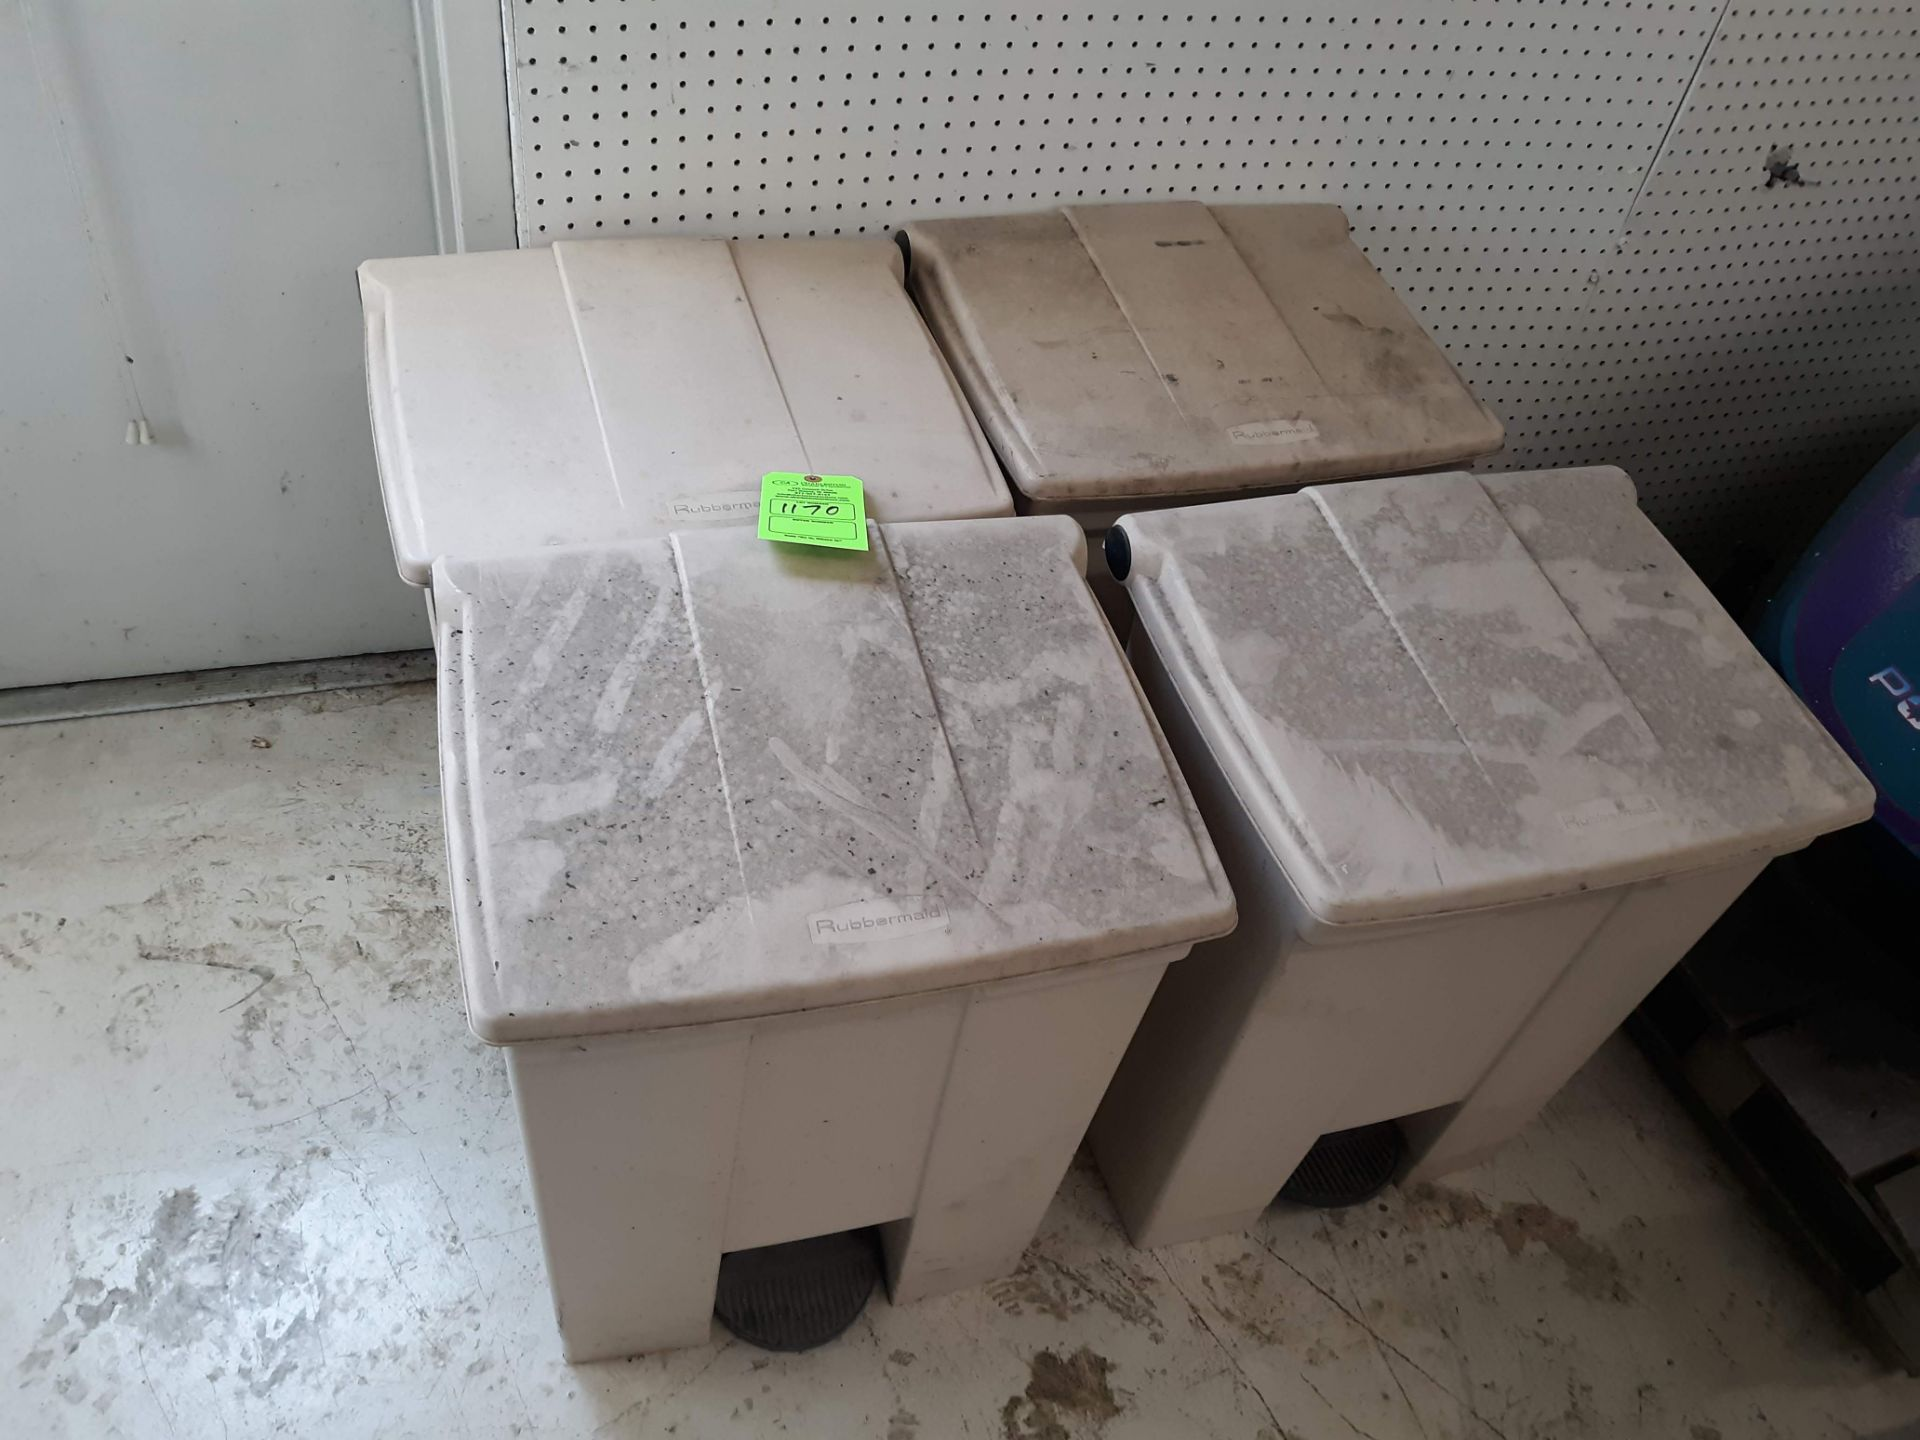 Lot 1170 - (4) RUBBERMAID STEP-ON 18 GAL. TRASH CANS (LOCATED AT: 432 COUNCIL DRIVE, FORT WAYNE, IN 46825)